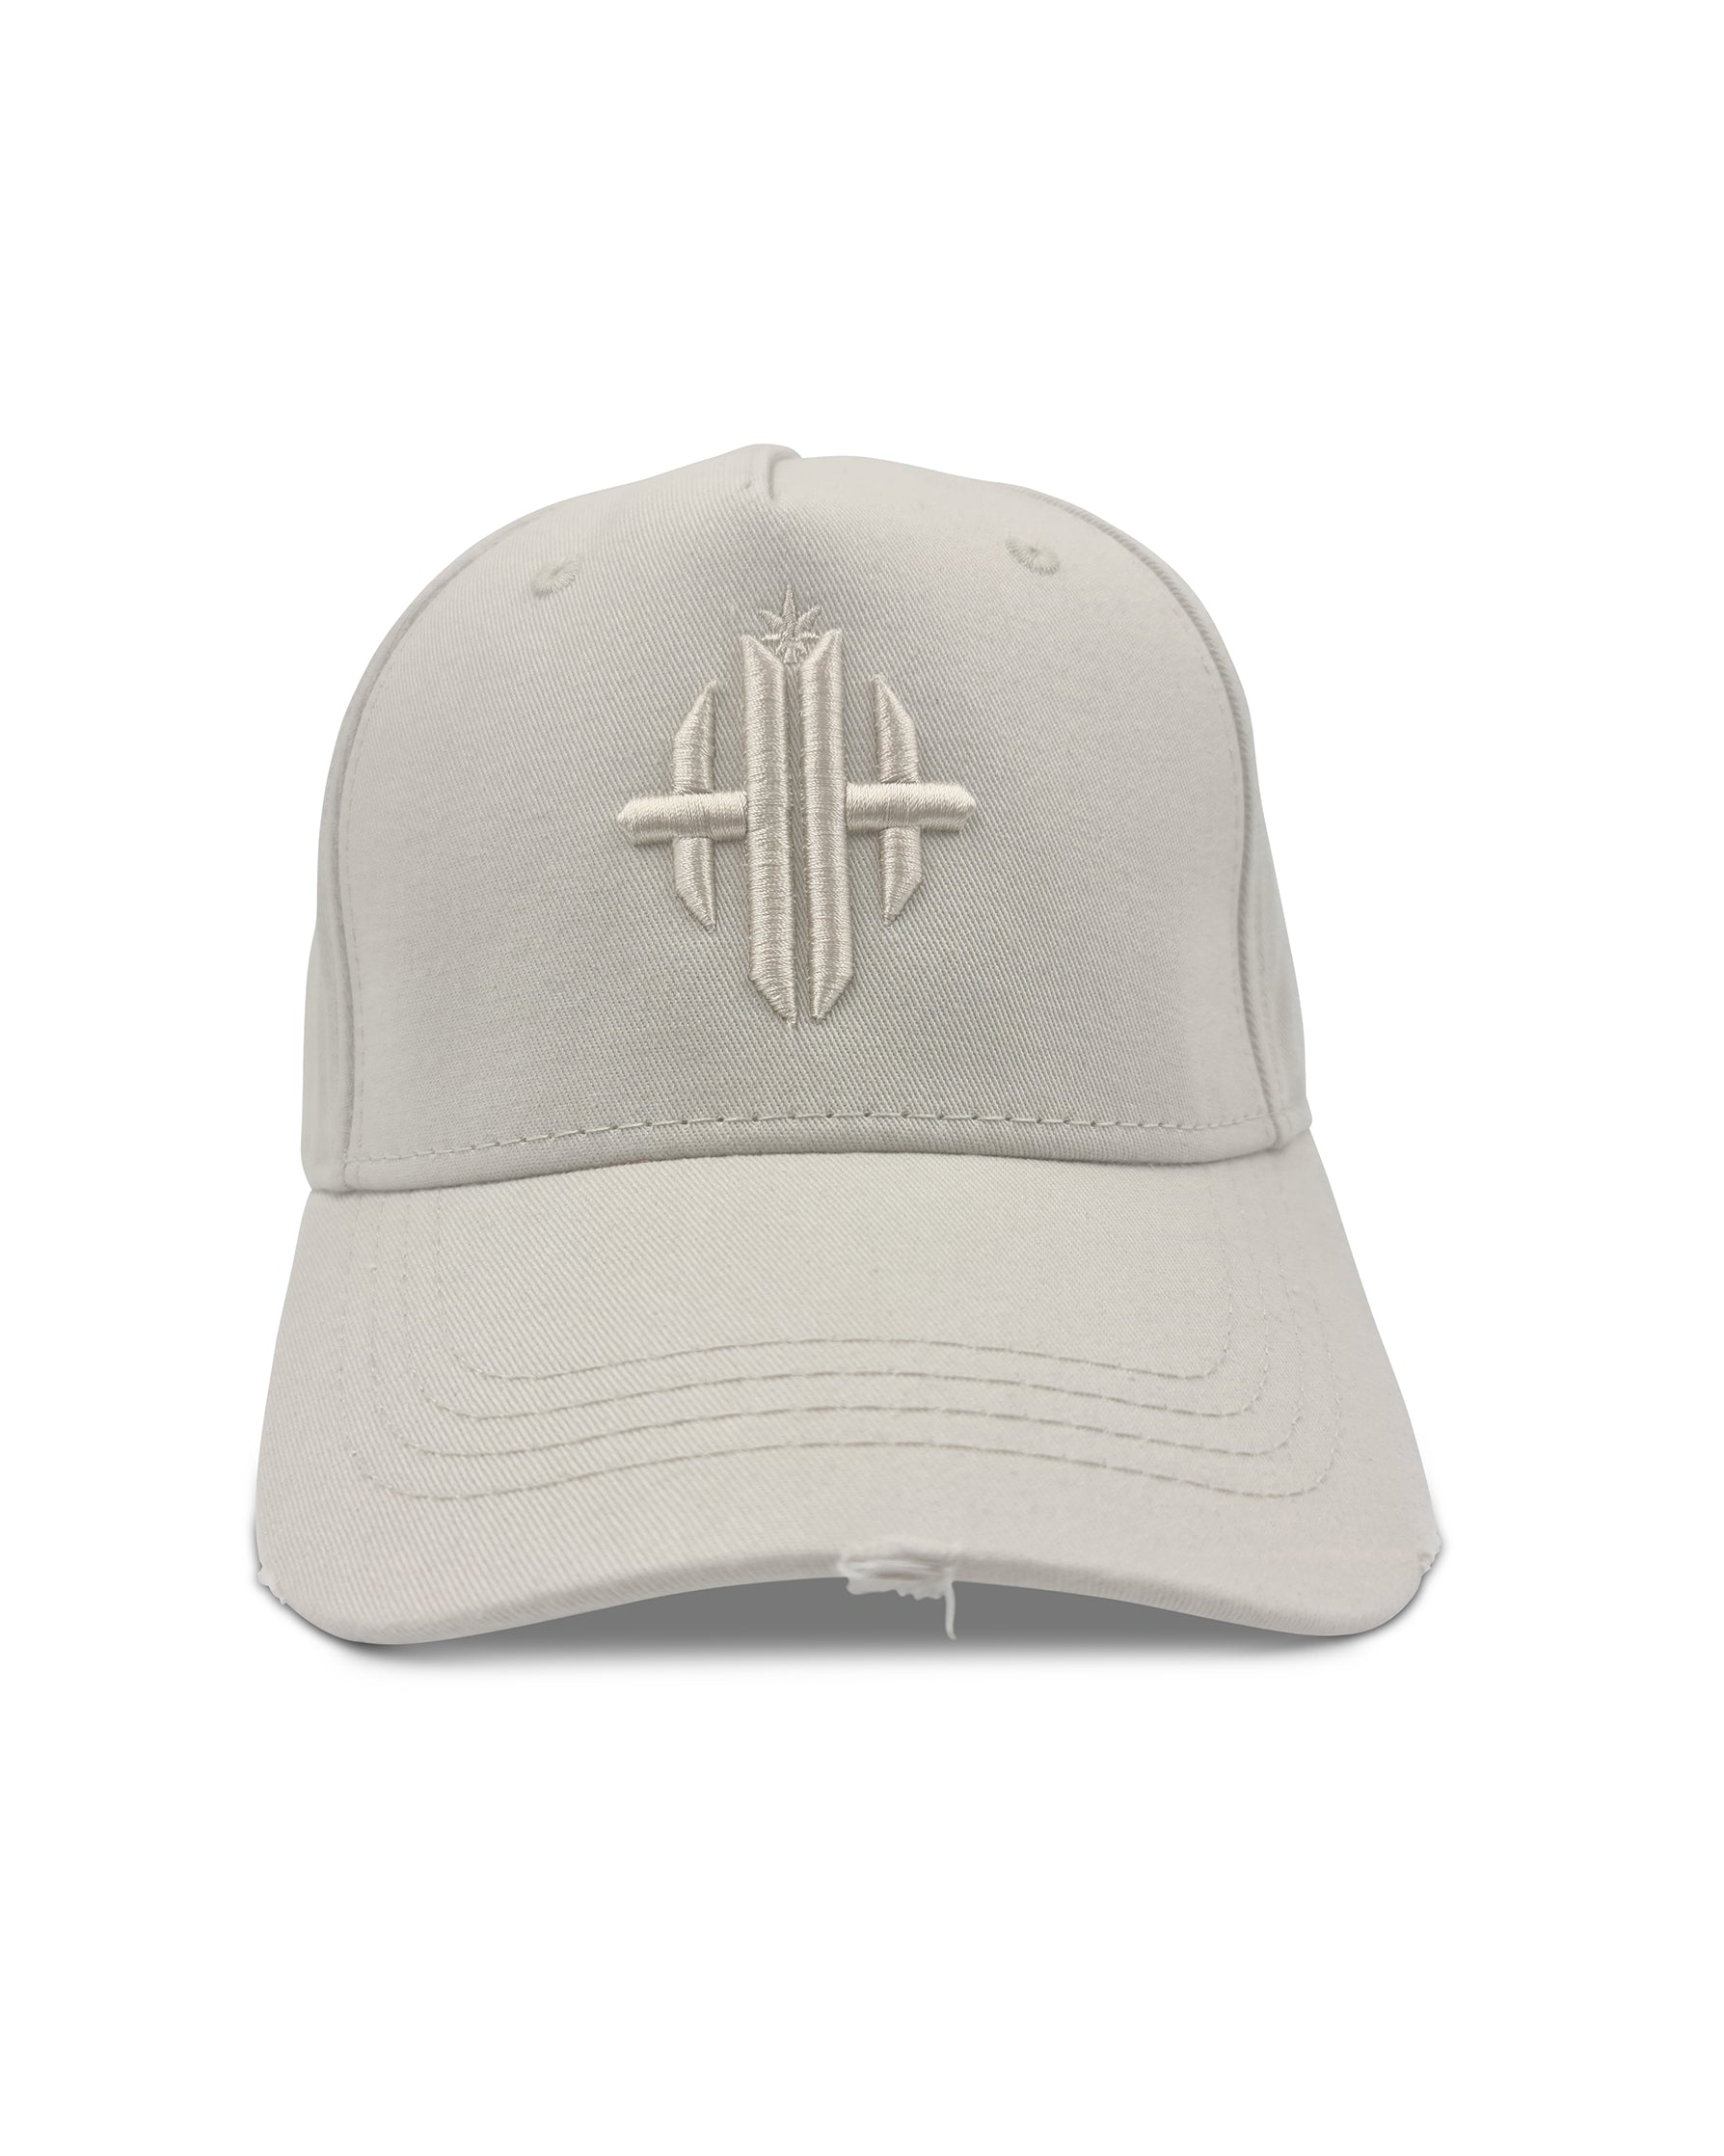 Herbman Hustlin Monogram Cap - Cream/Cream LIMITED EDITION - Front